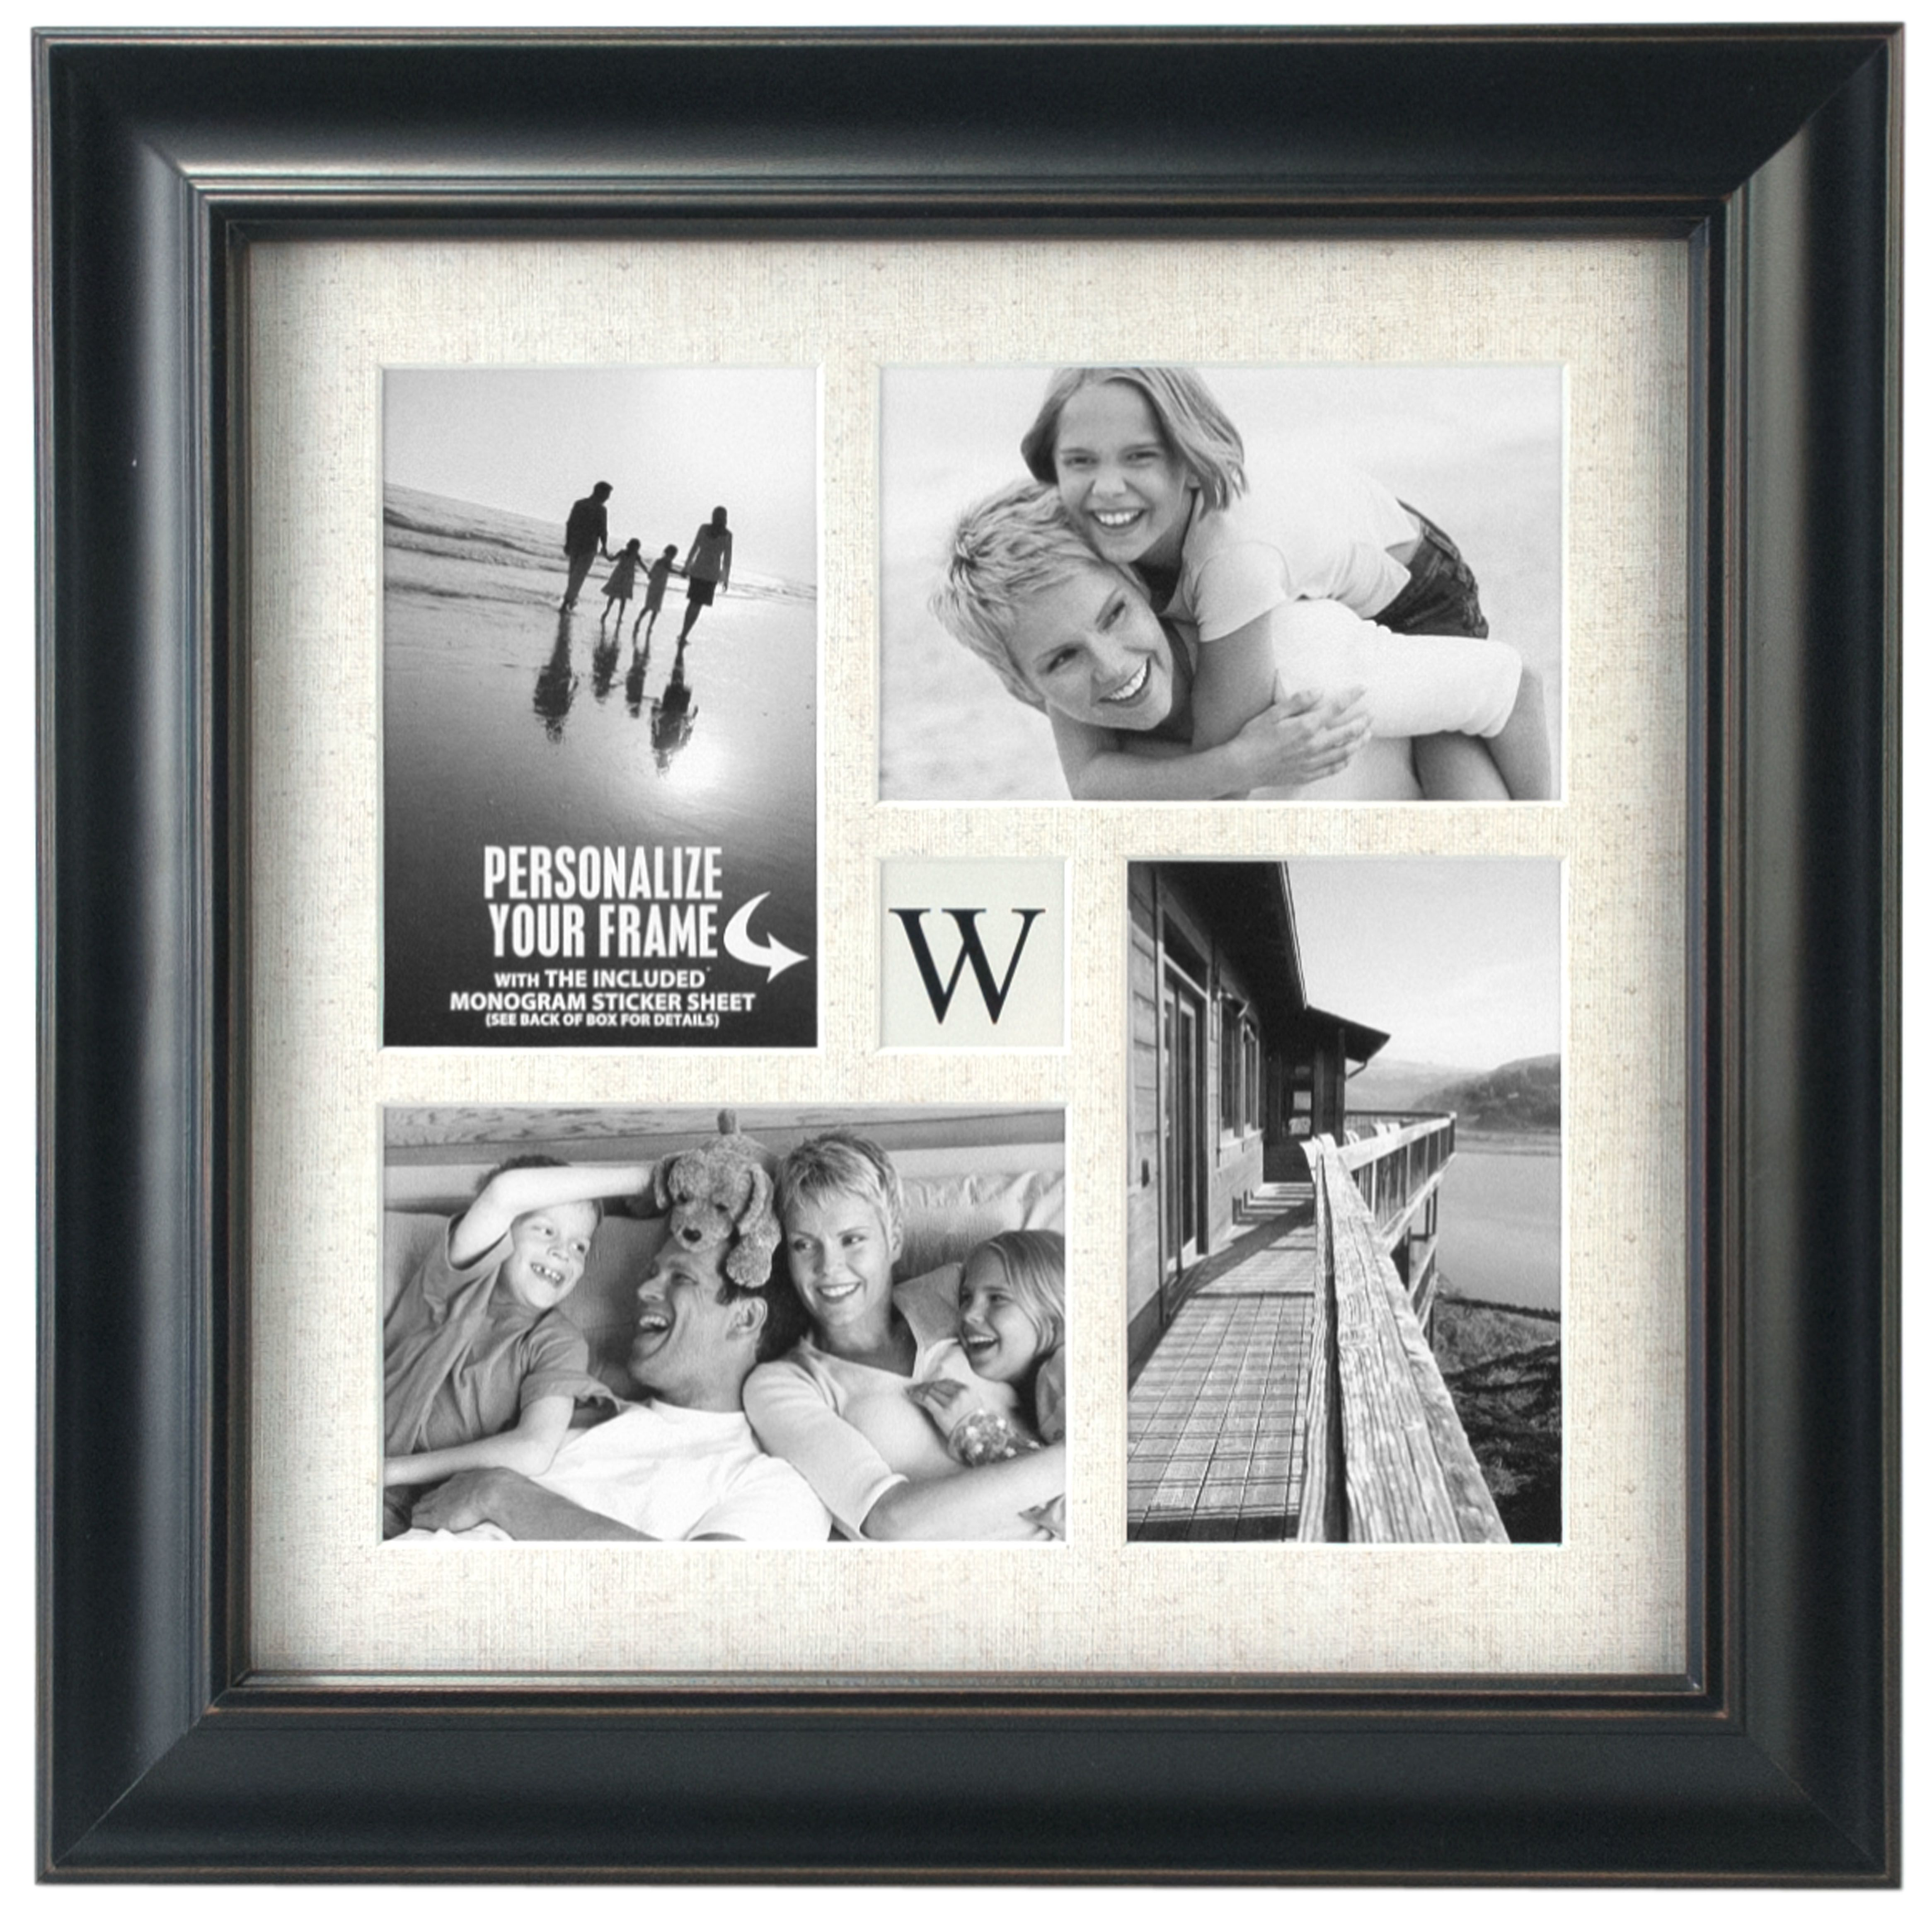 Tabletop Storyboard Frame 4X6 - Family Monogram Collage | Products ...